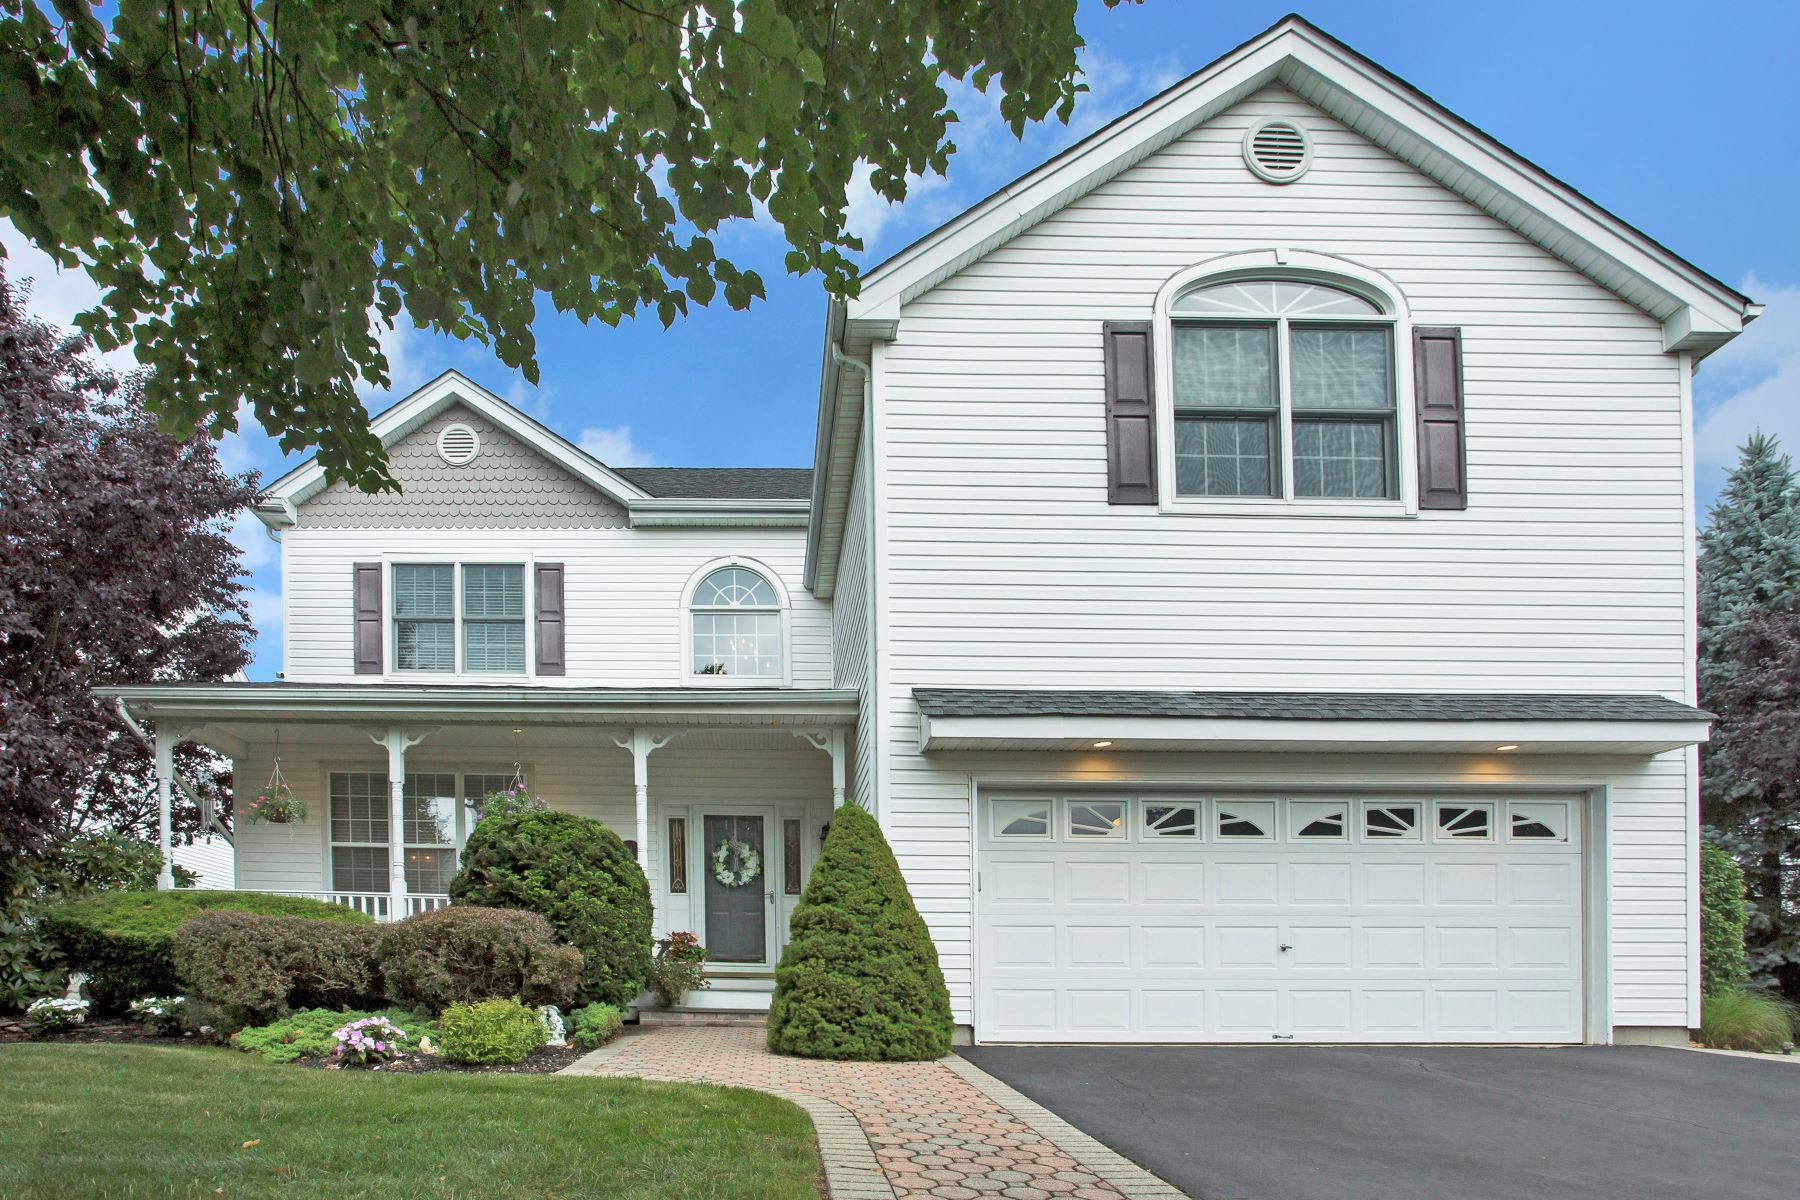 Single Family Homes for Sale at Melville 14 Wharton Pl Melville, New York 11747 United States